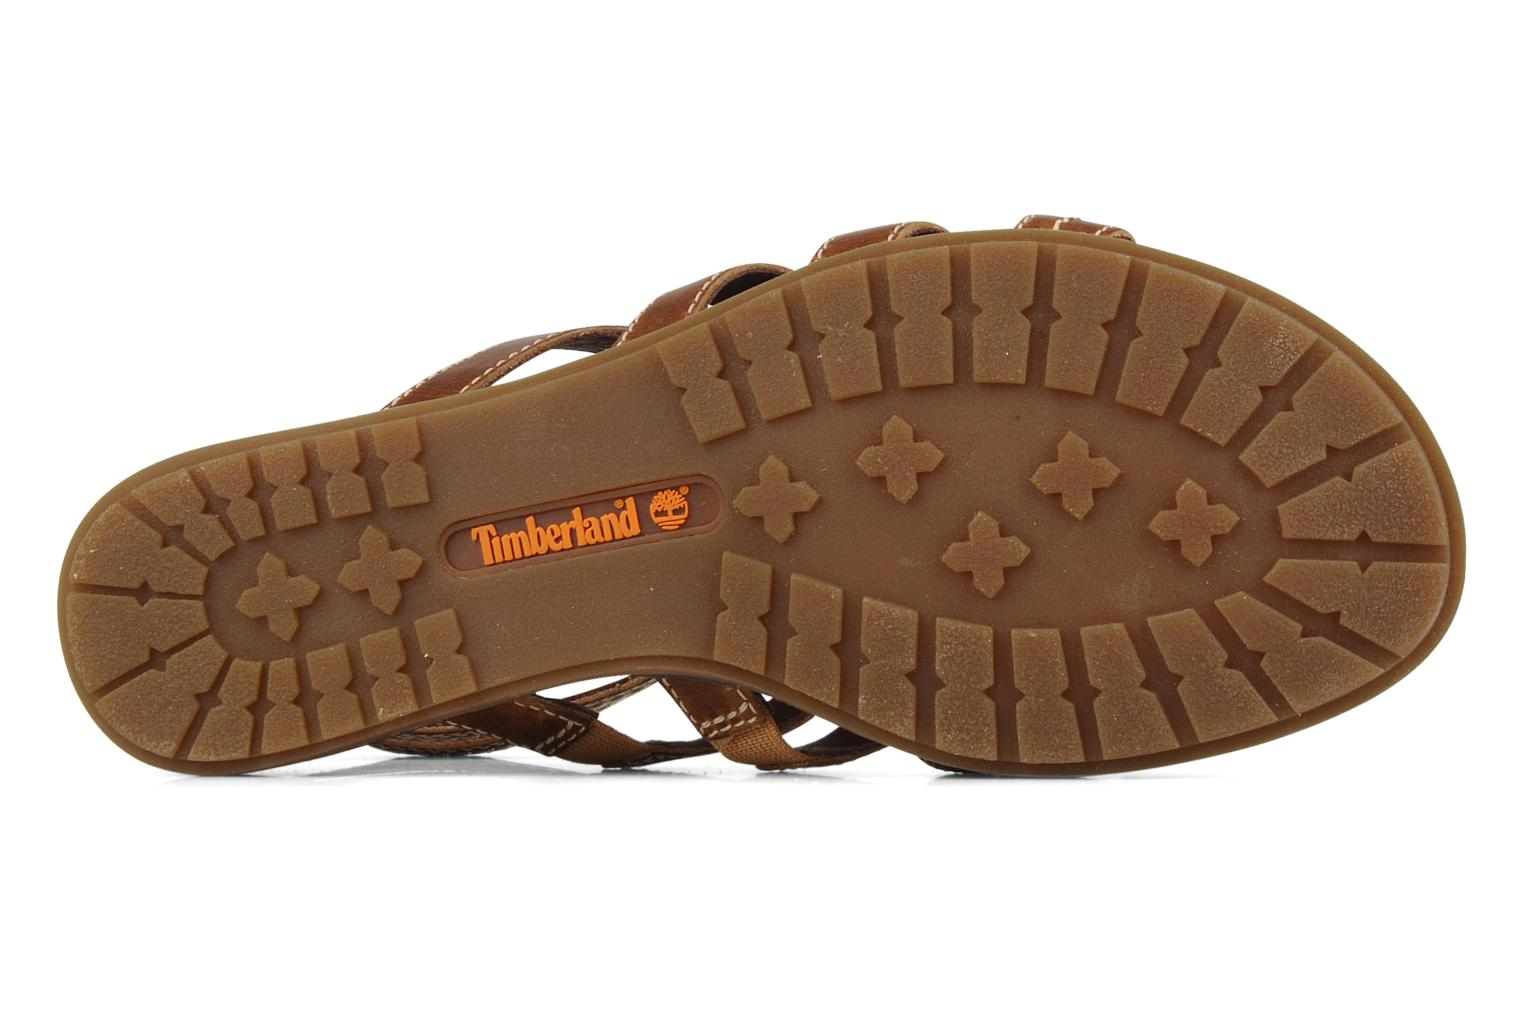 Sandales et nu-pieds Timberland Earthkeepers kennebunk braided gladiator Marron vue haut